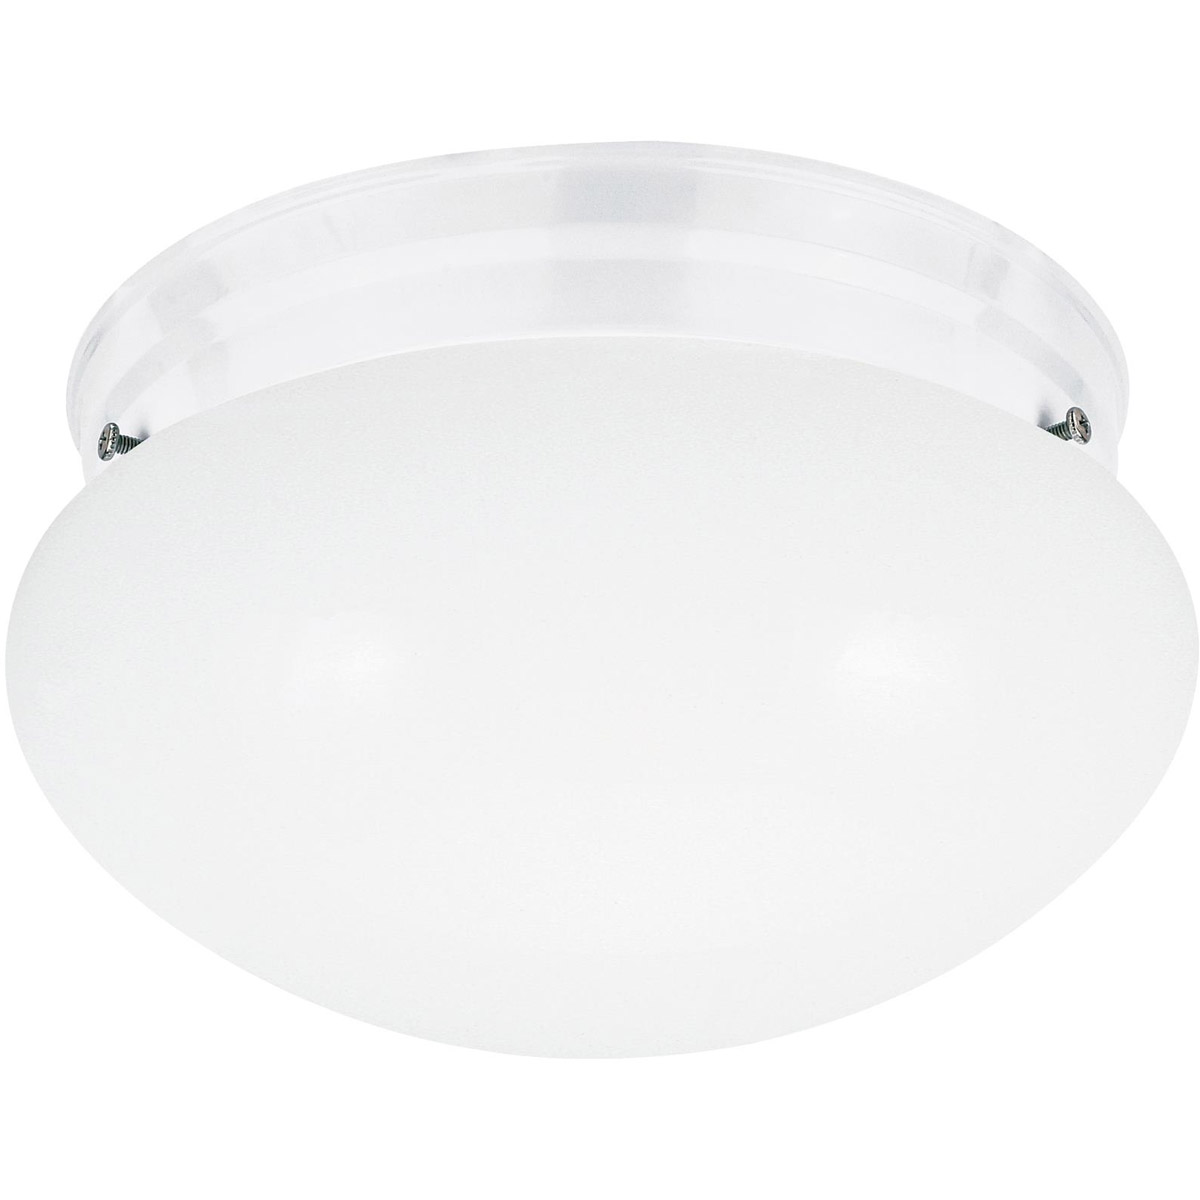 Sea Gull Lighting Webster 1 Light Flush Mount in White 5326-15 photo